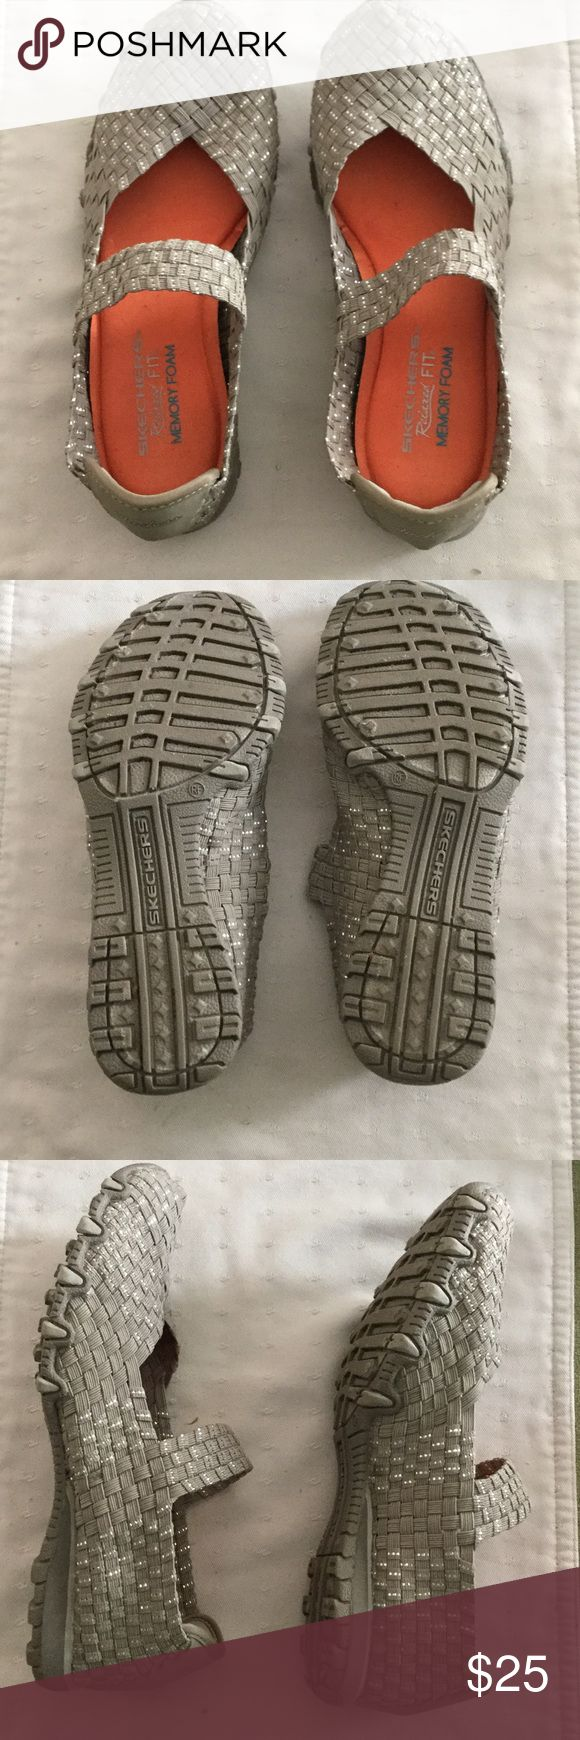 Sketchers Memory Foam Shoes, SZ 8, Grey/Silver Sketchers, relaxed fit, memory foam shoes in excellent condition. Very comfortable. Elastic band across top is not adjustable. Worn only a couple of times. Gray with silver accents. 8M Sketchers Shoes Sneakers